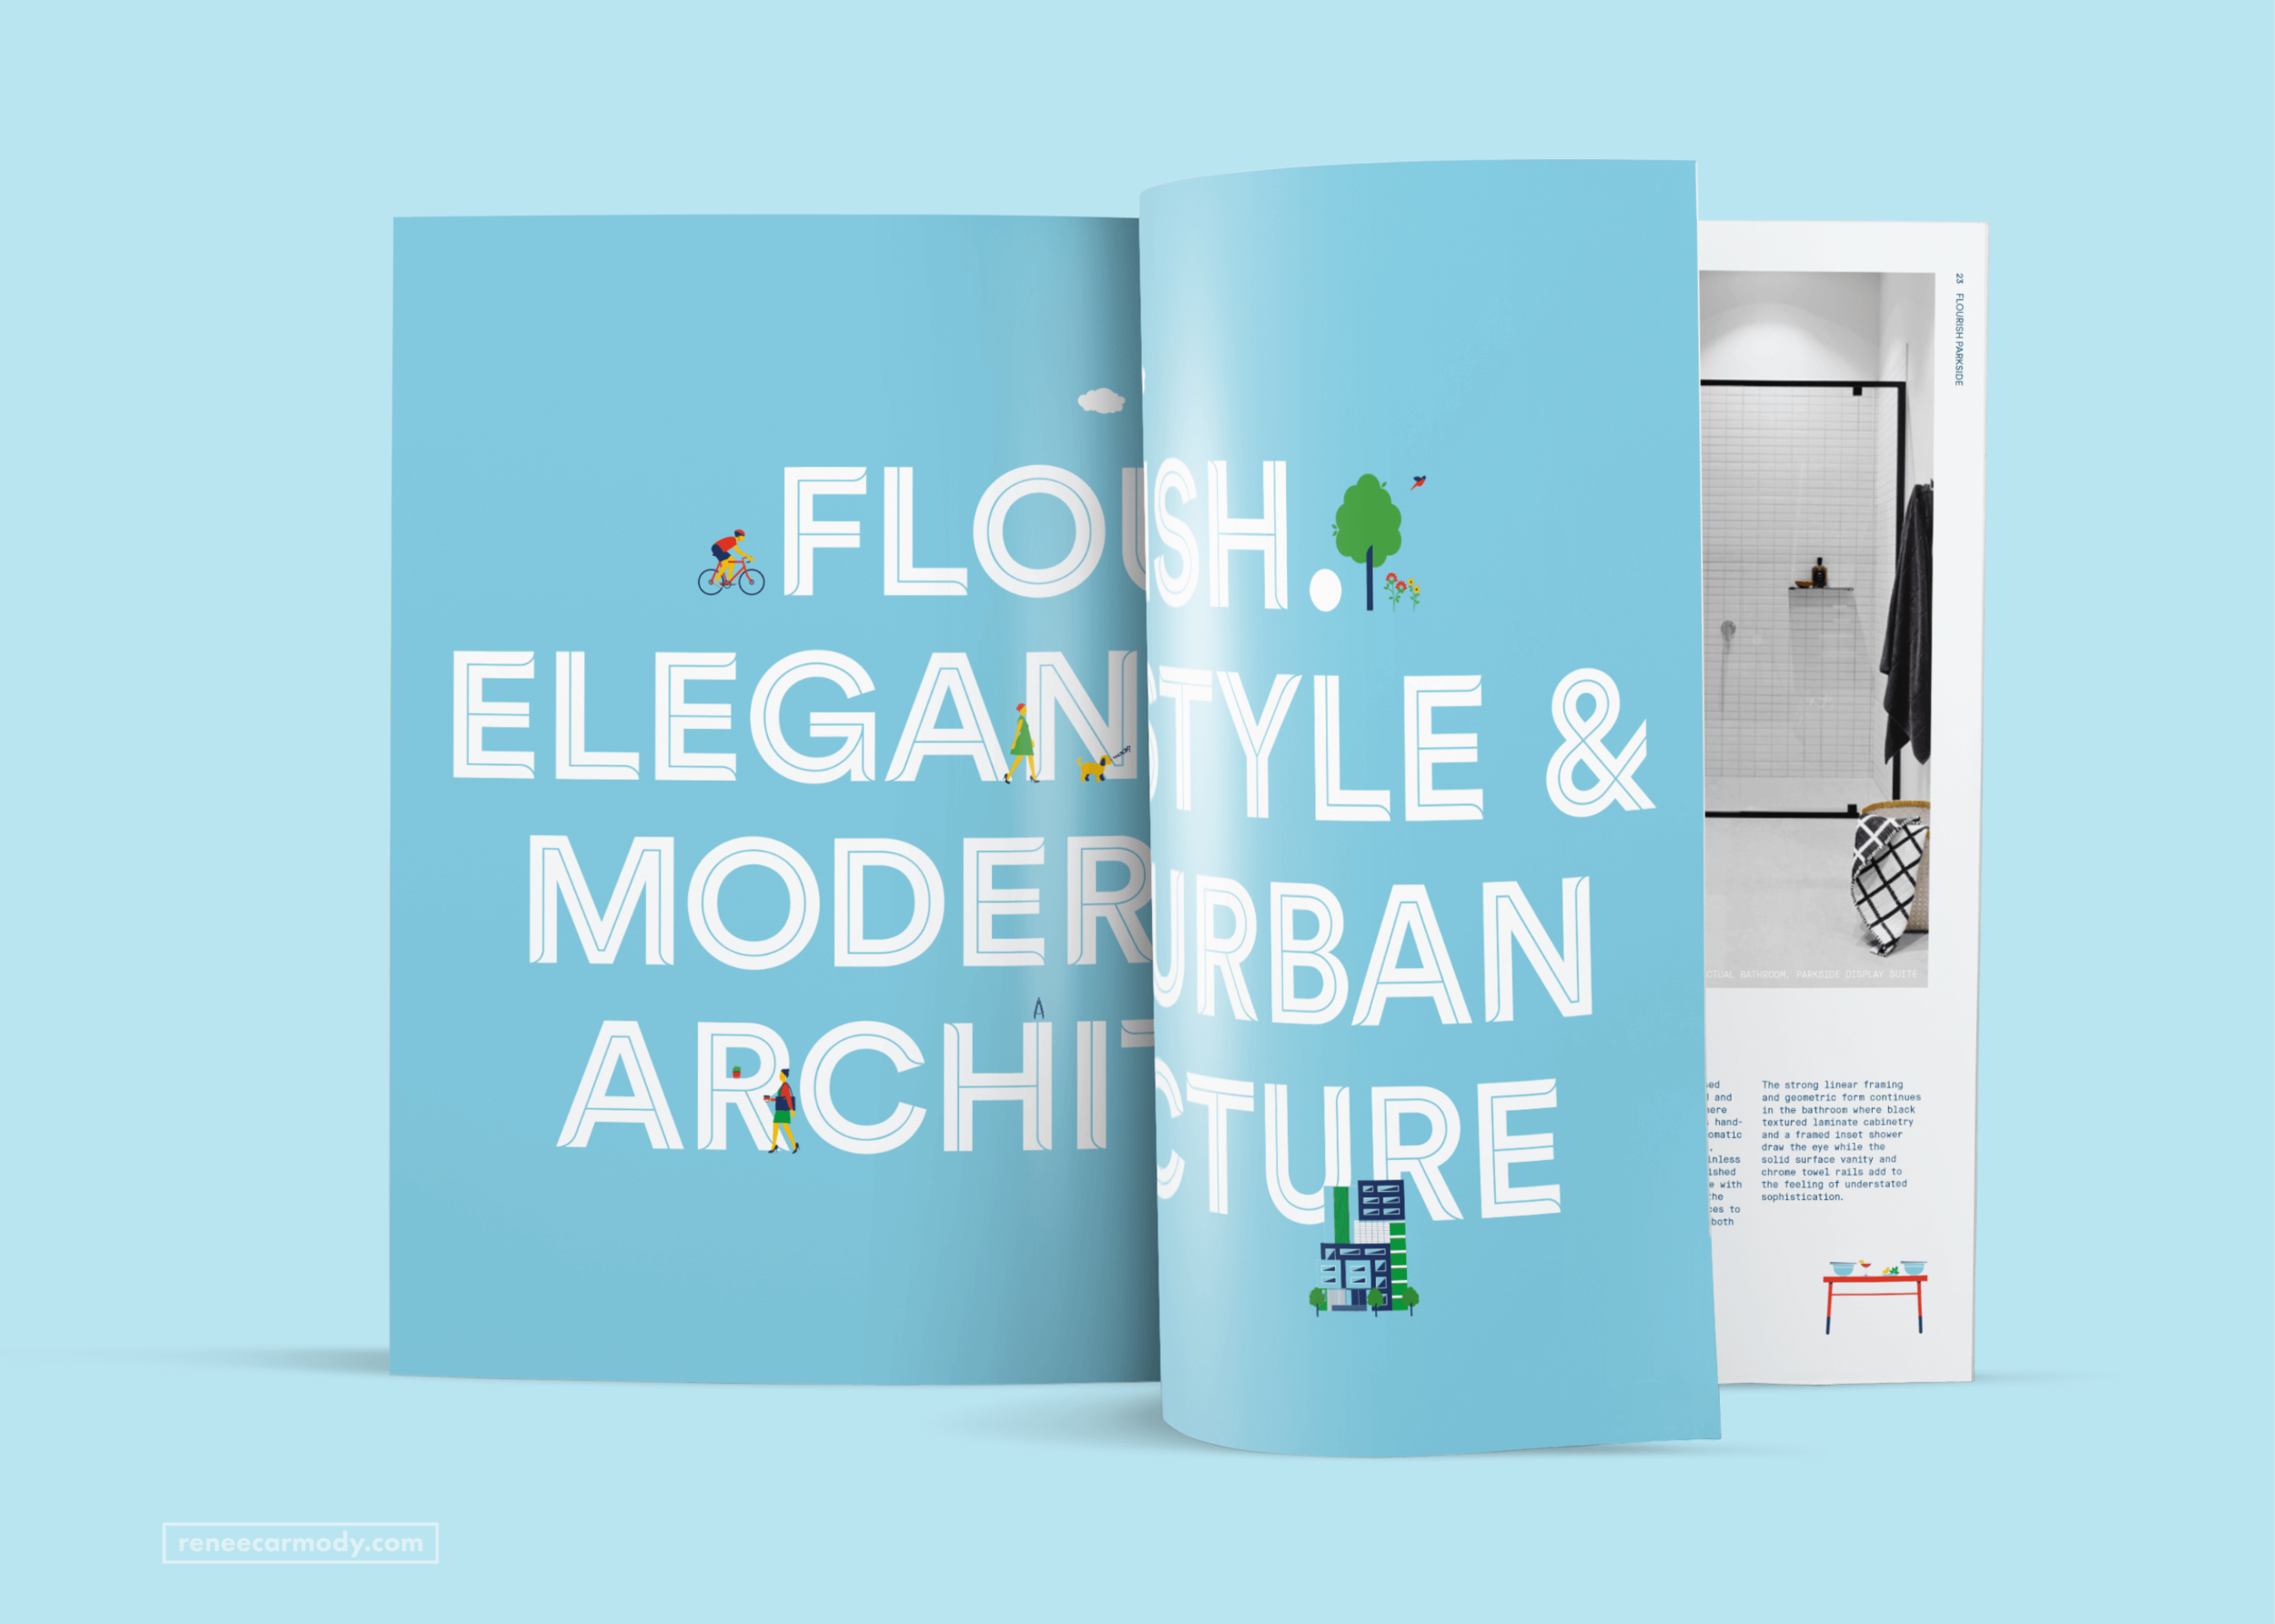 Lifestyle illustrations for print and digital design for Flourish Parkside by Renée Carmody Design, commissioned by Savi Communications.